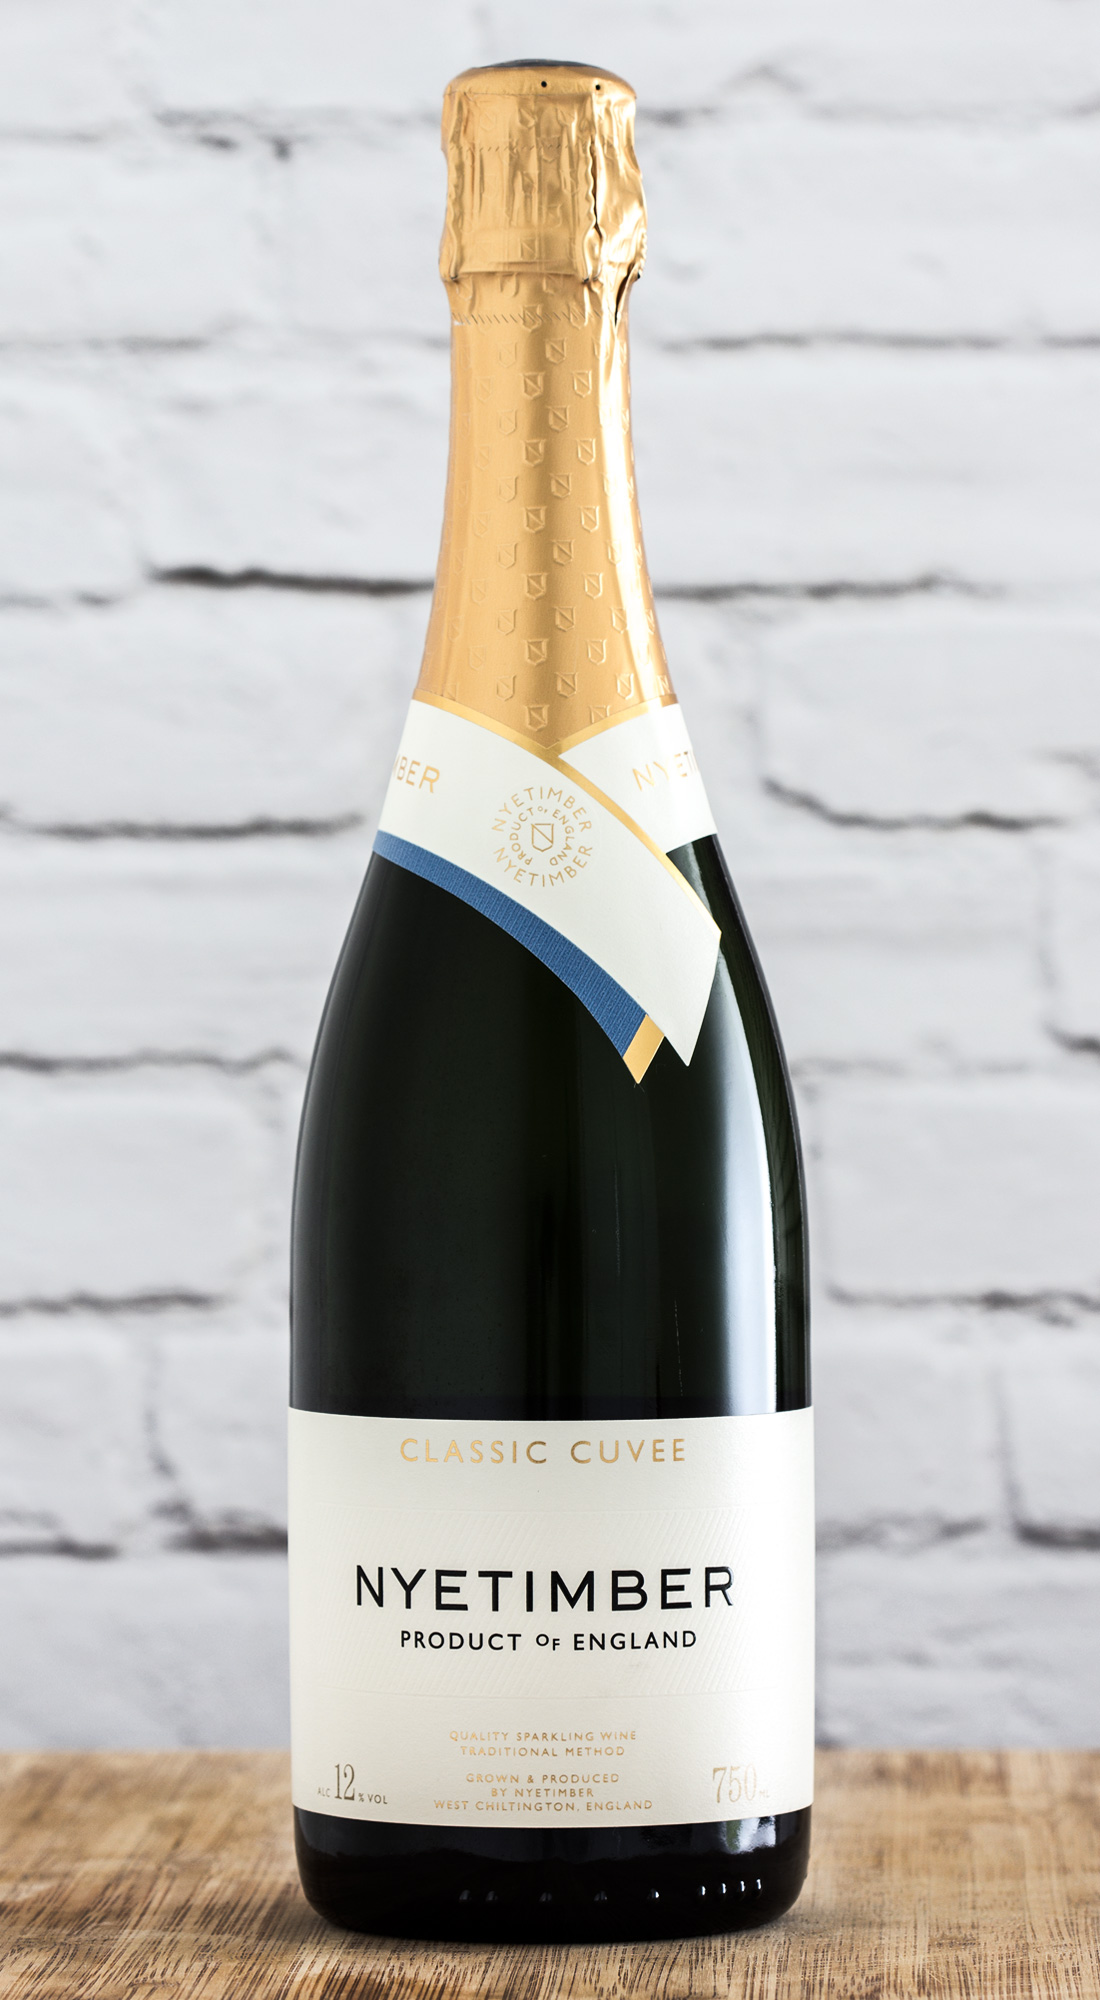 Nyetimber Classic Cuvée 2010